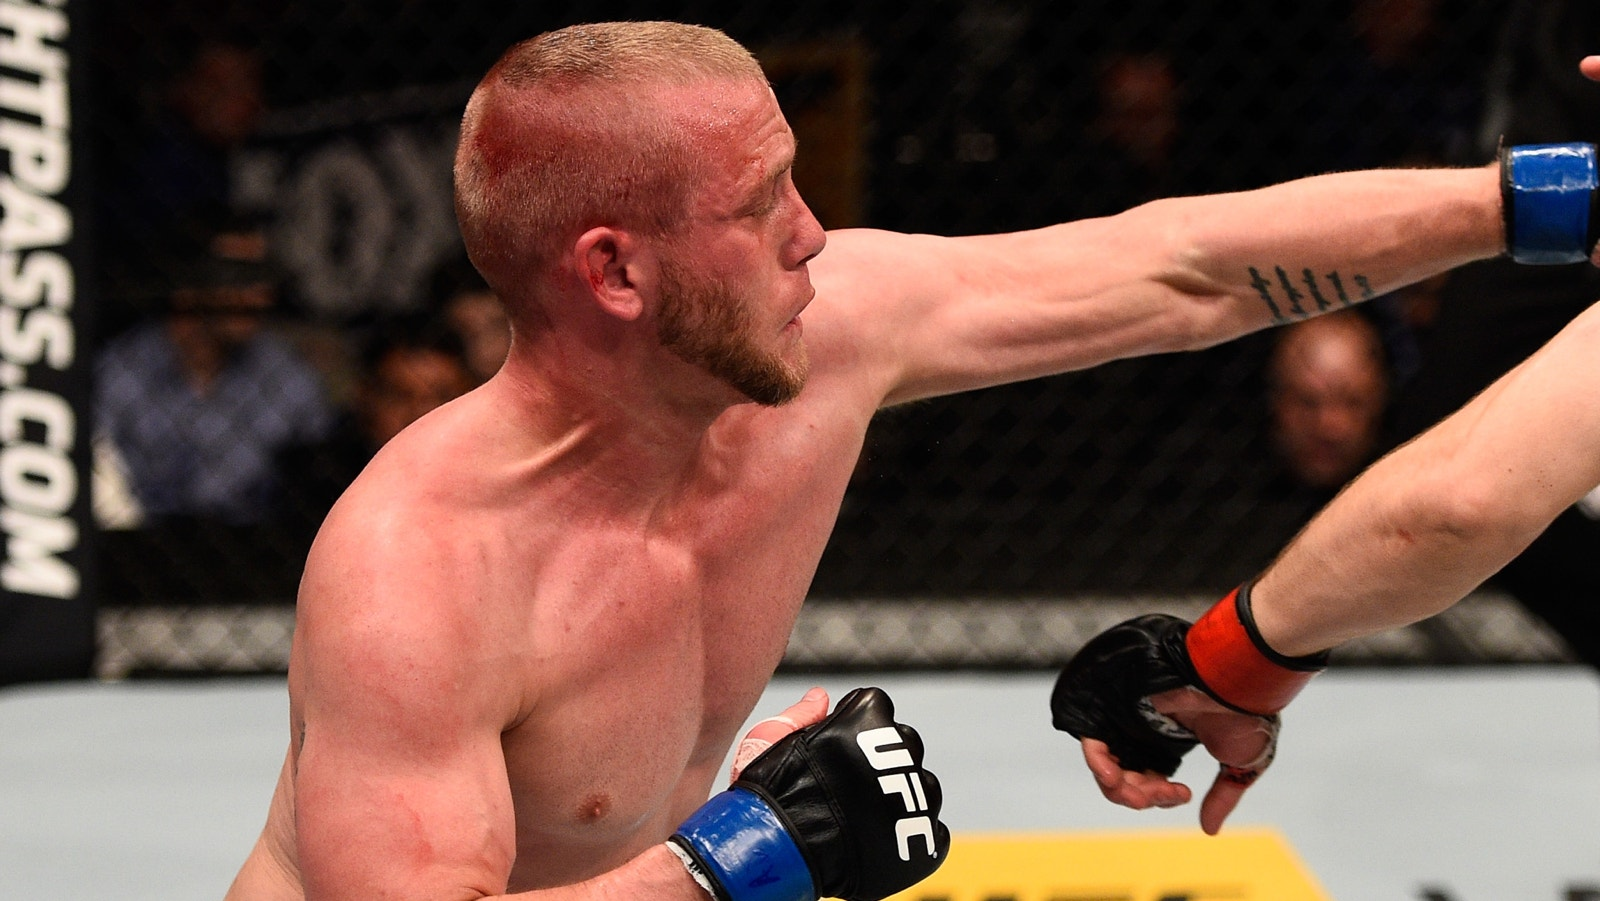 Darrell Horcher details his path back to the UFC after